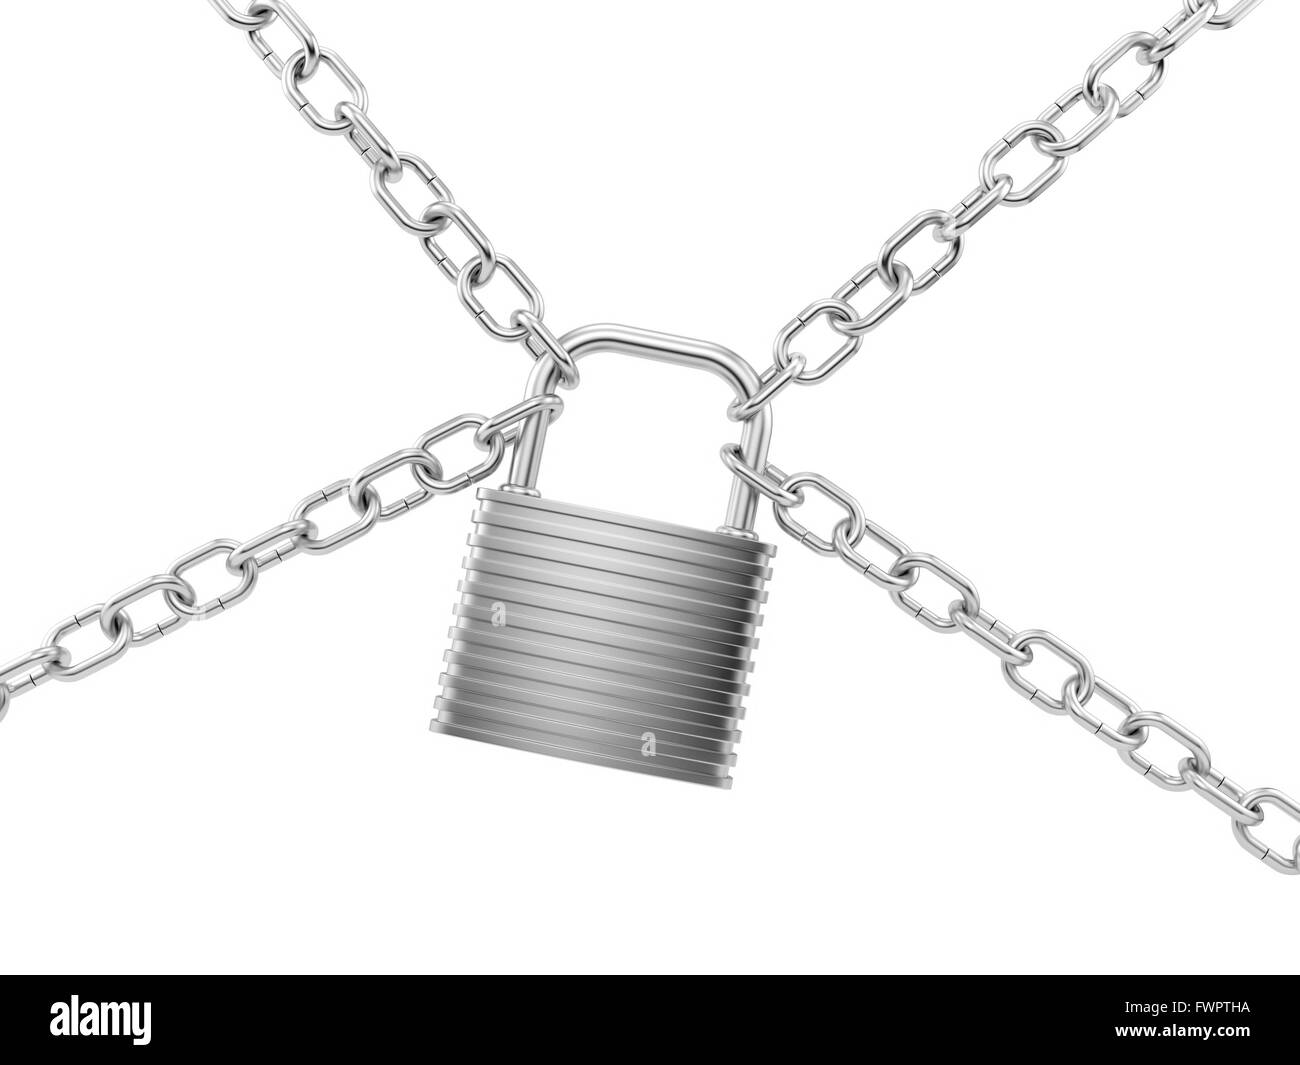 render of a silver lock with chains, isolated  on white - Stock Image